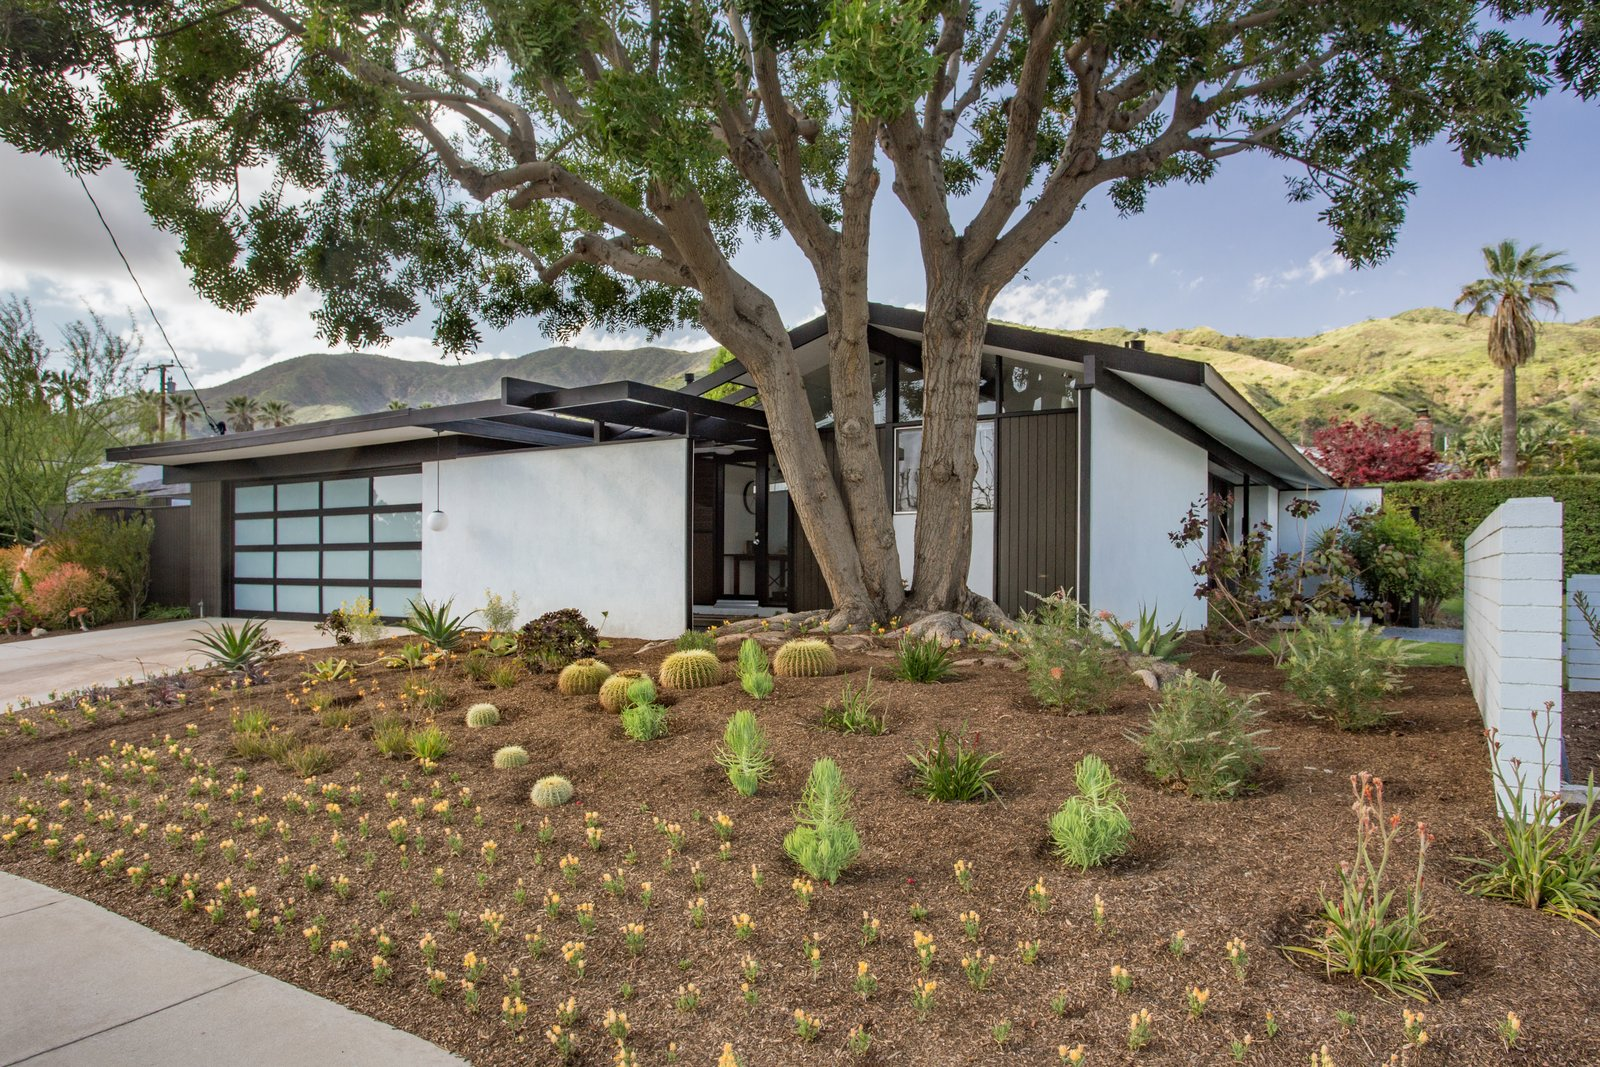 Tagged: Outdoor, Front Yard, and Trees. Offered at $899K, a Restored Midcentury Abode Shines in Southern California - Photo 1 of 14